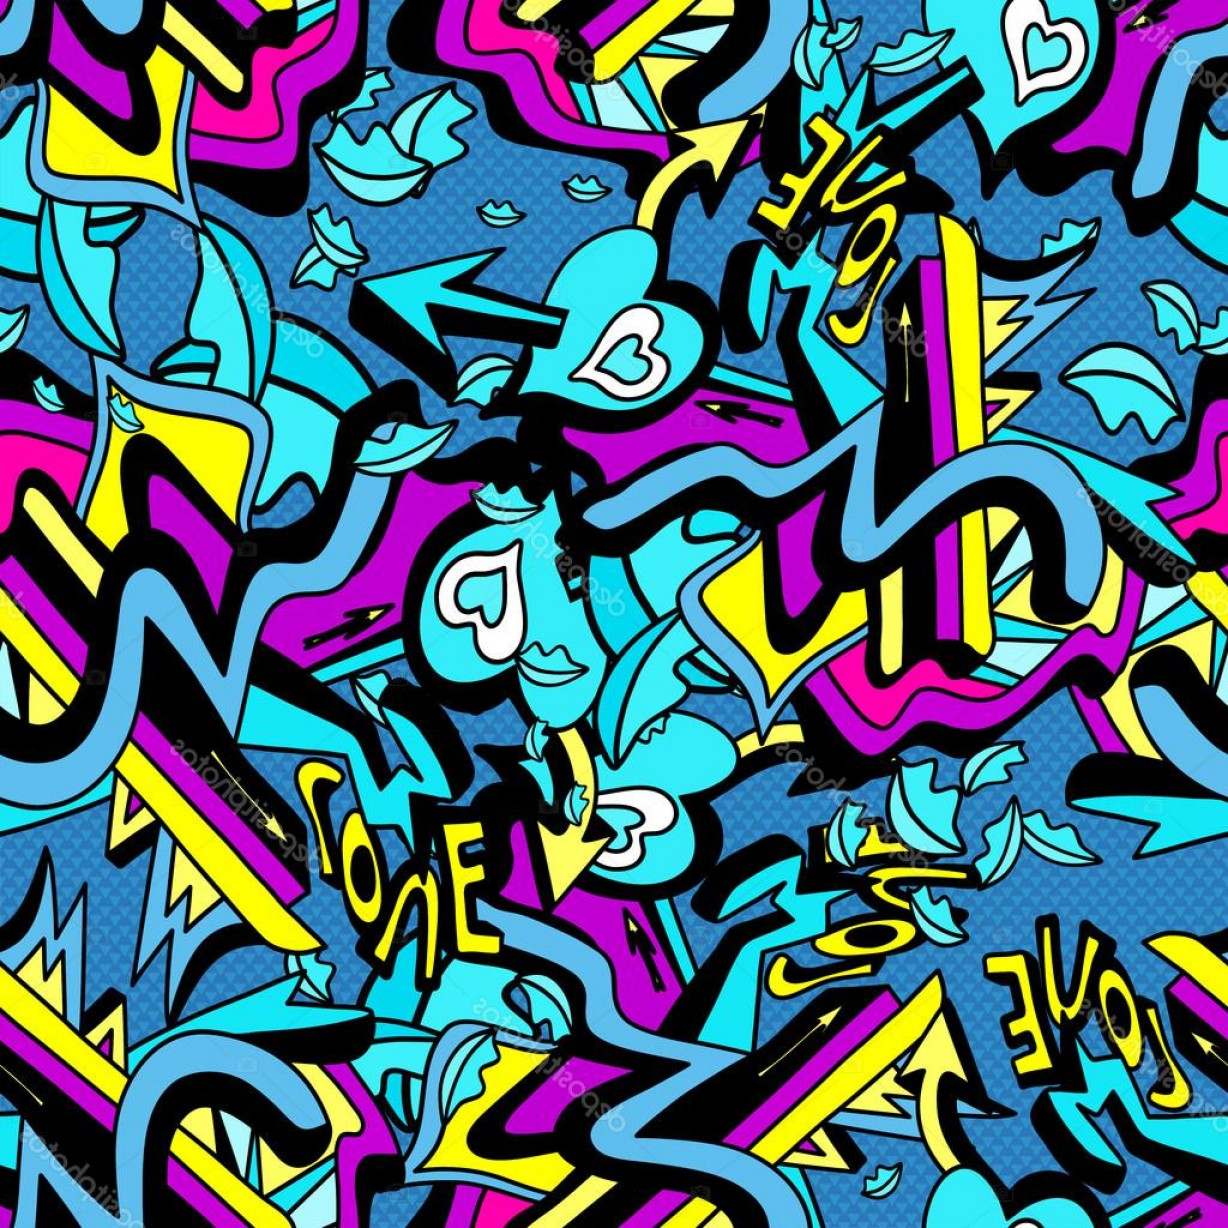 Graffiti Lines Vector: Stock Illustration Psychedelic Graffiti Lines And Heart